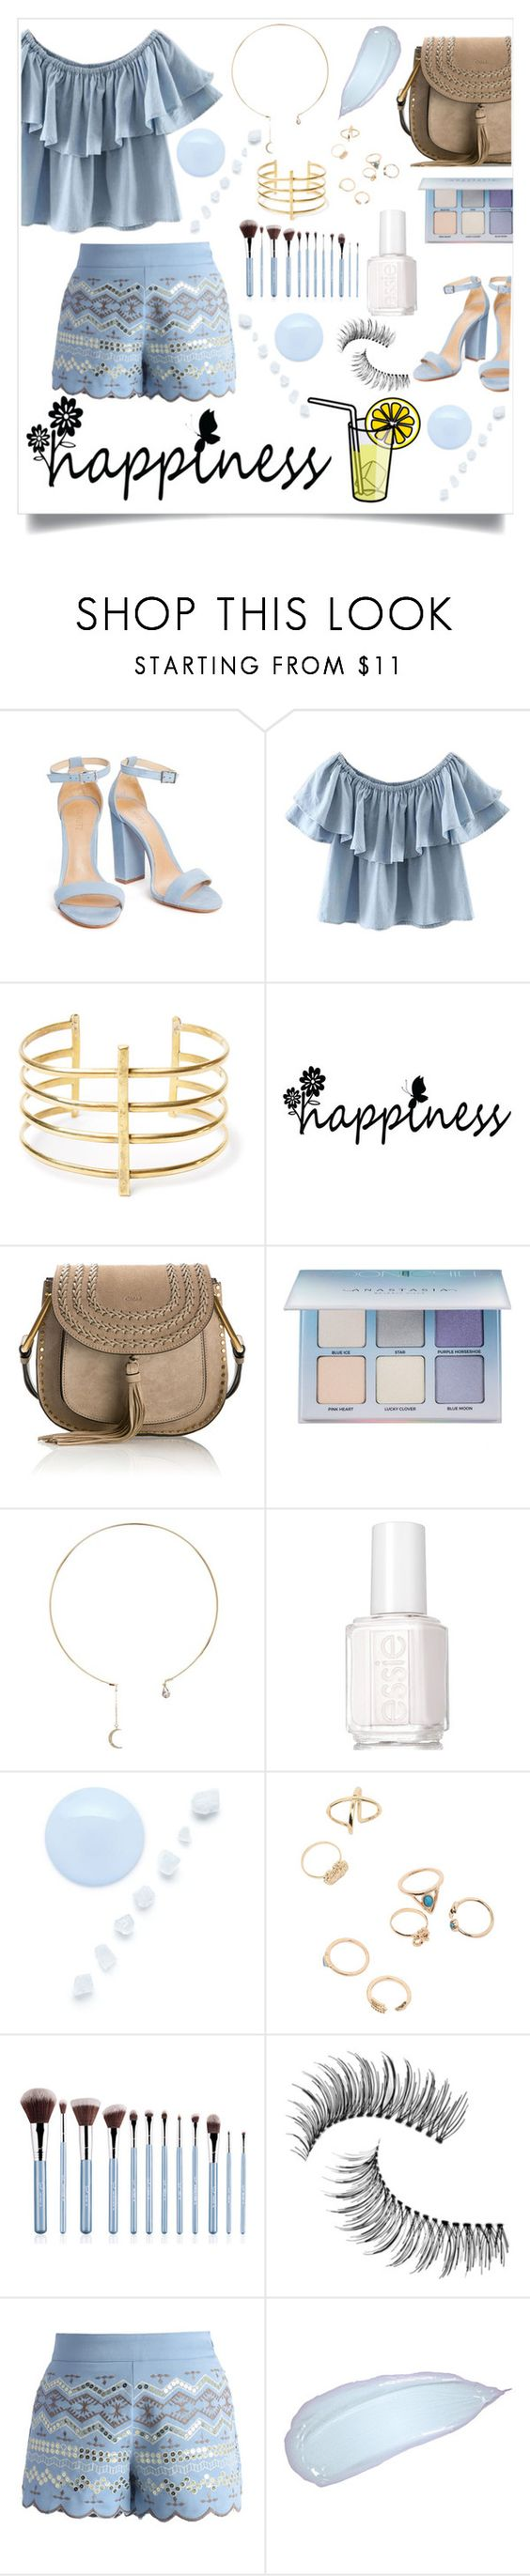 """""""Happy 💙"""" by selena-styles-ibtissem23 ❤ liked on Polyvore featuring WithChic, BauXo, Chloé, Anastasia Beverly Hills, Eye Candy, Essie, Sigma, Trish McEvoy and Chicwish"""